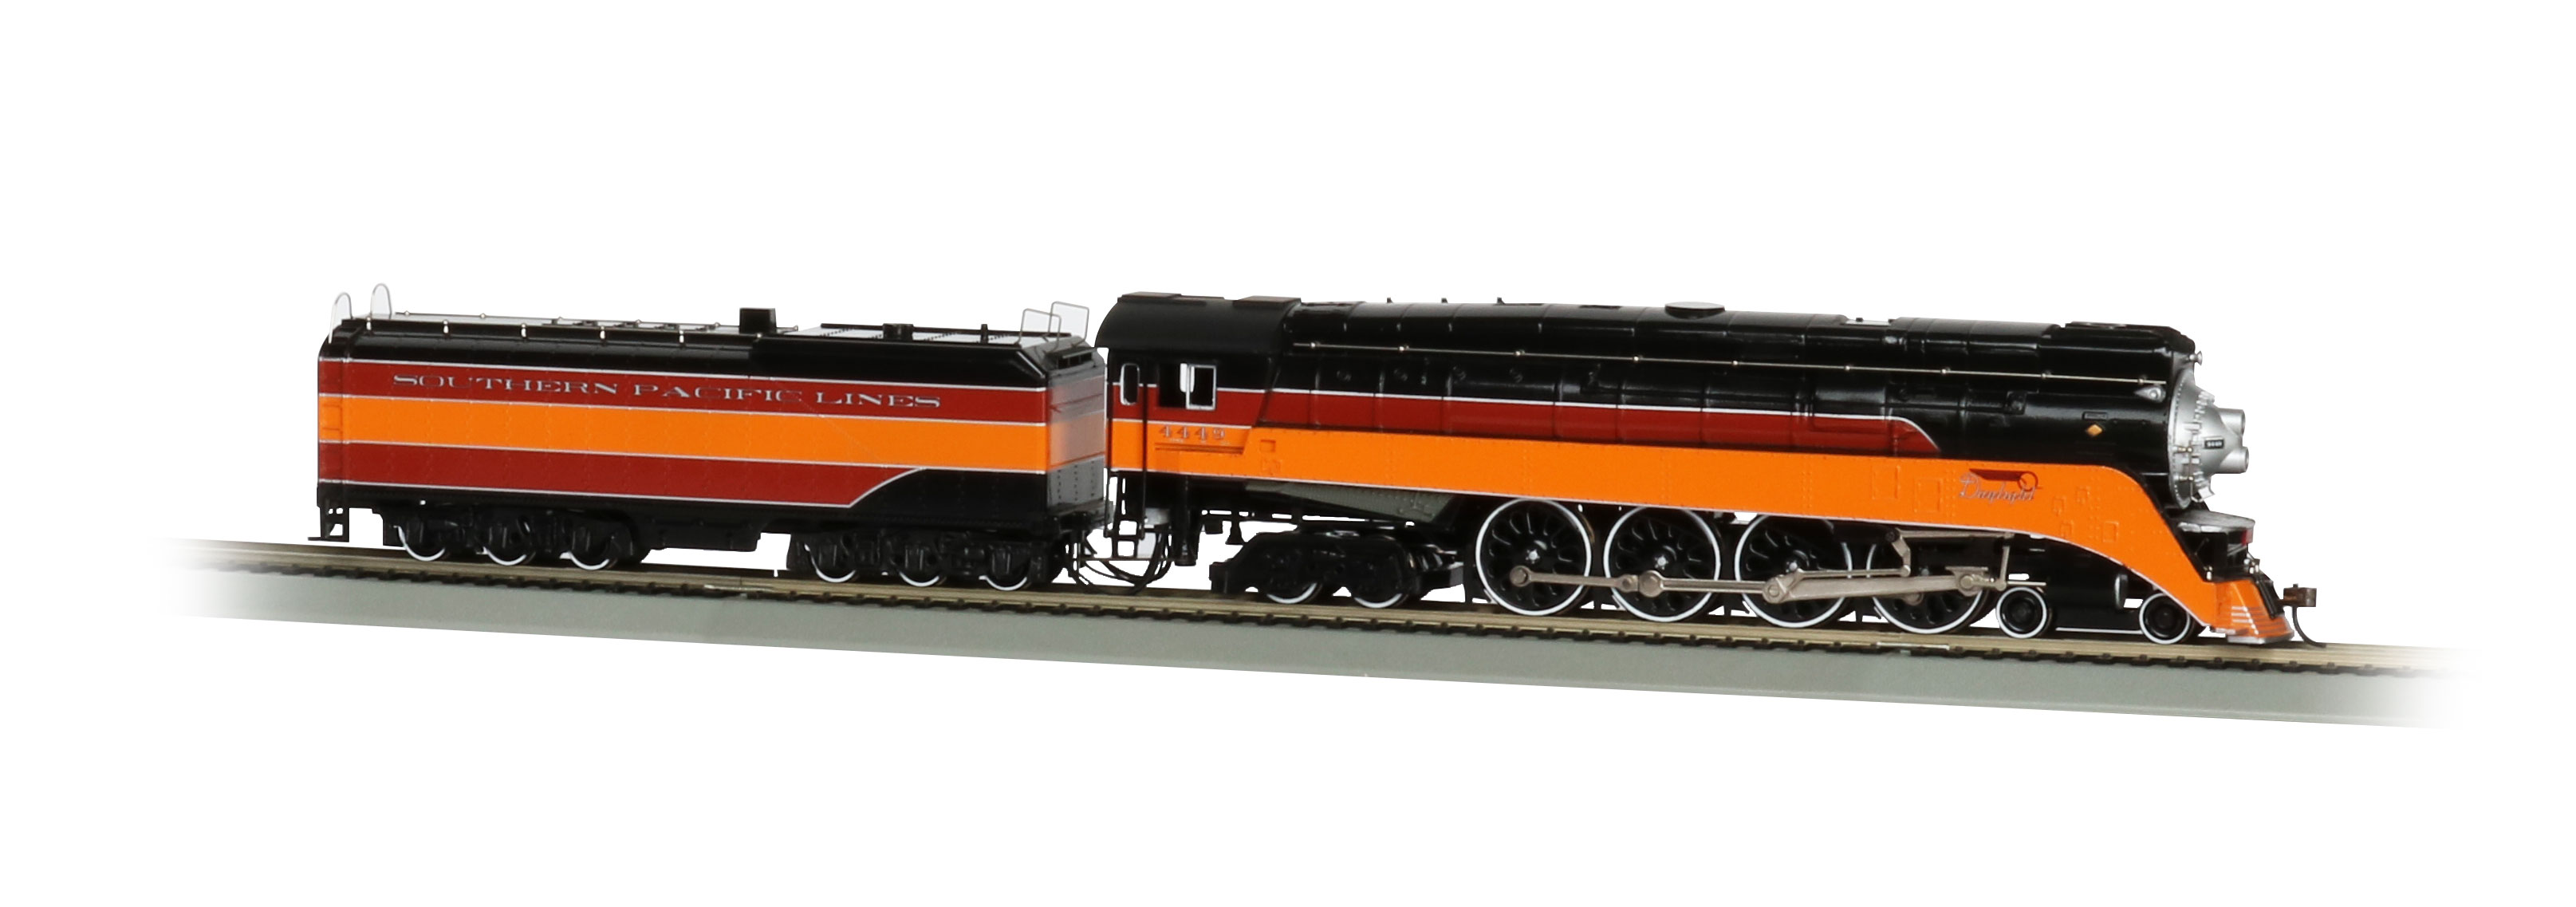 Bachmann Industries GS4 4-8-4 Locomotive /& Tender with Operating Headlight